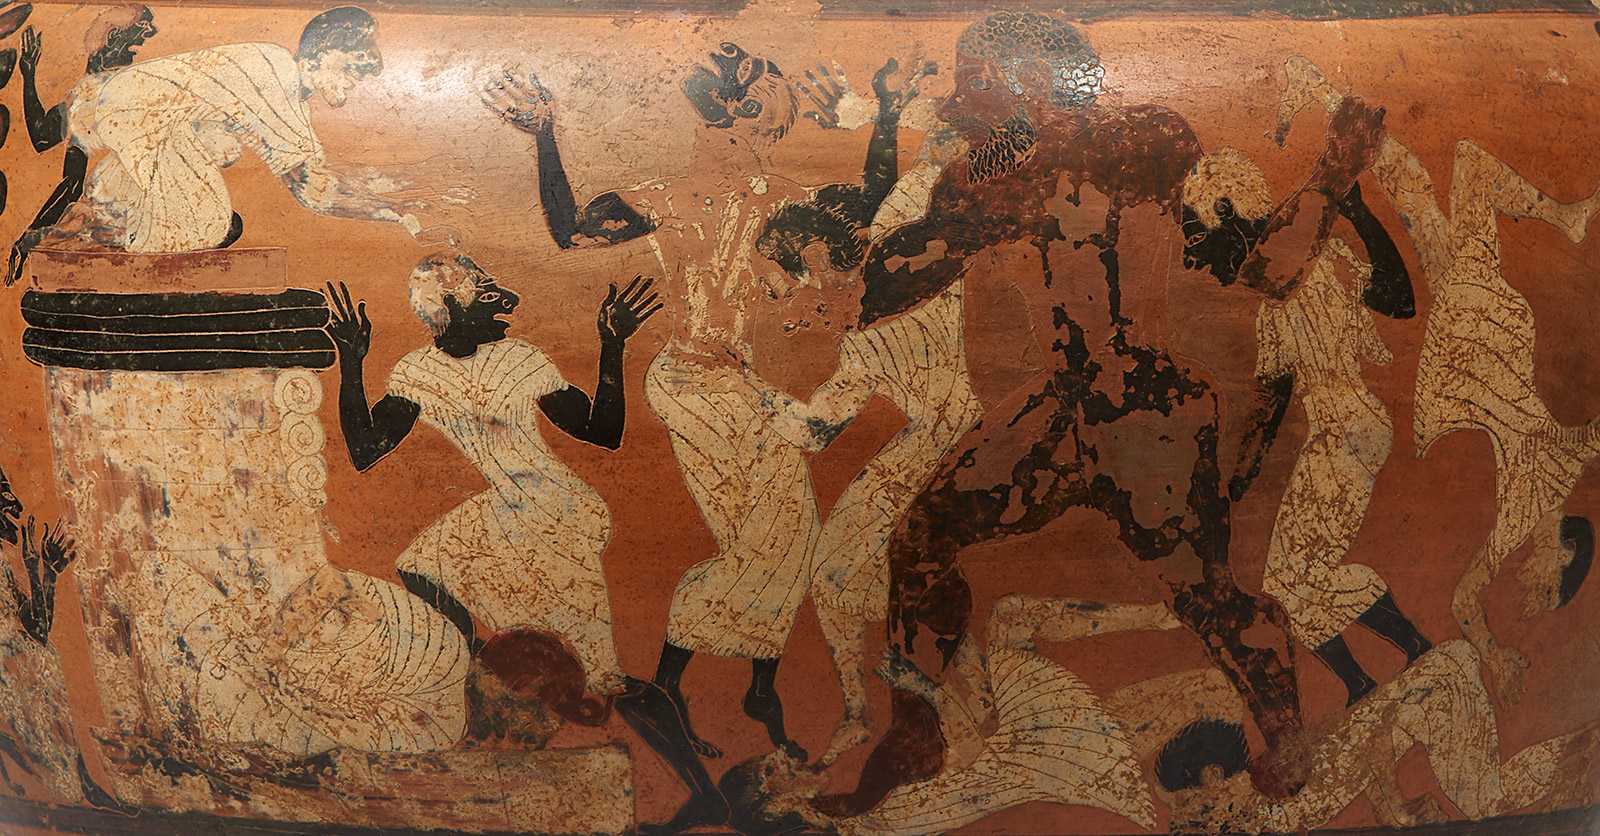 Detail of the figures on an ancient Greek vase showing a powerful male figure painted black